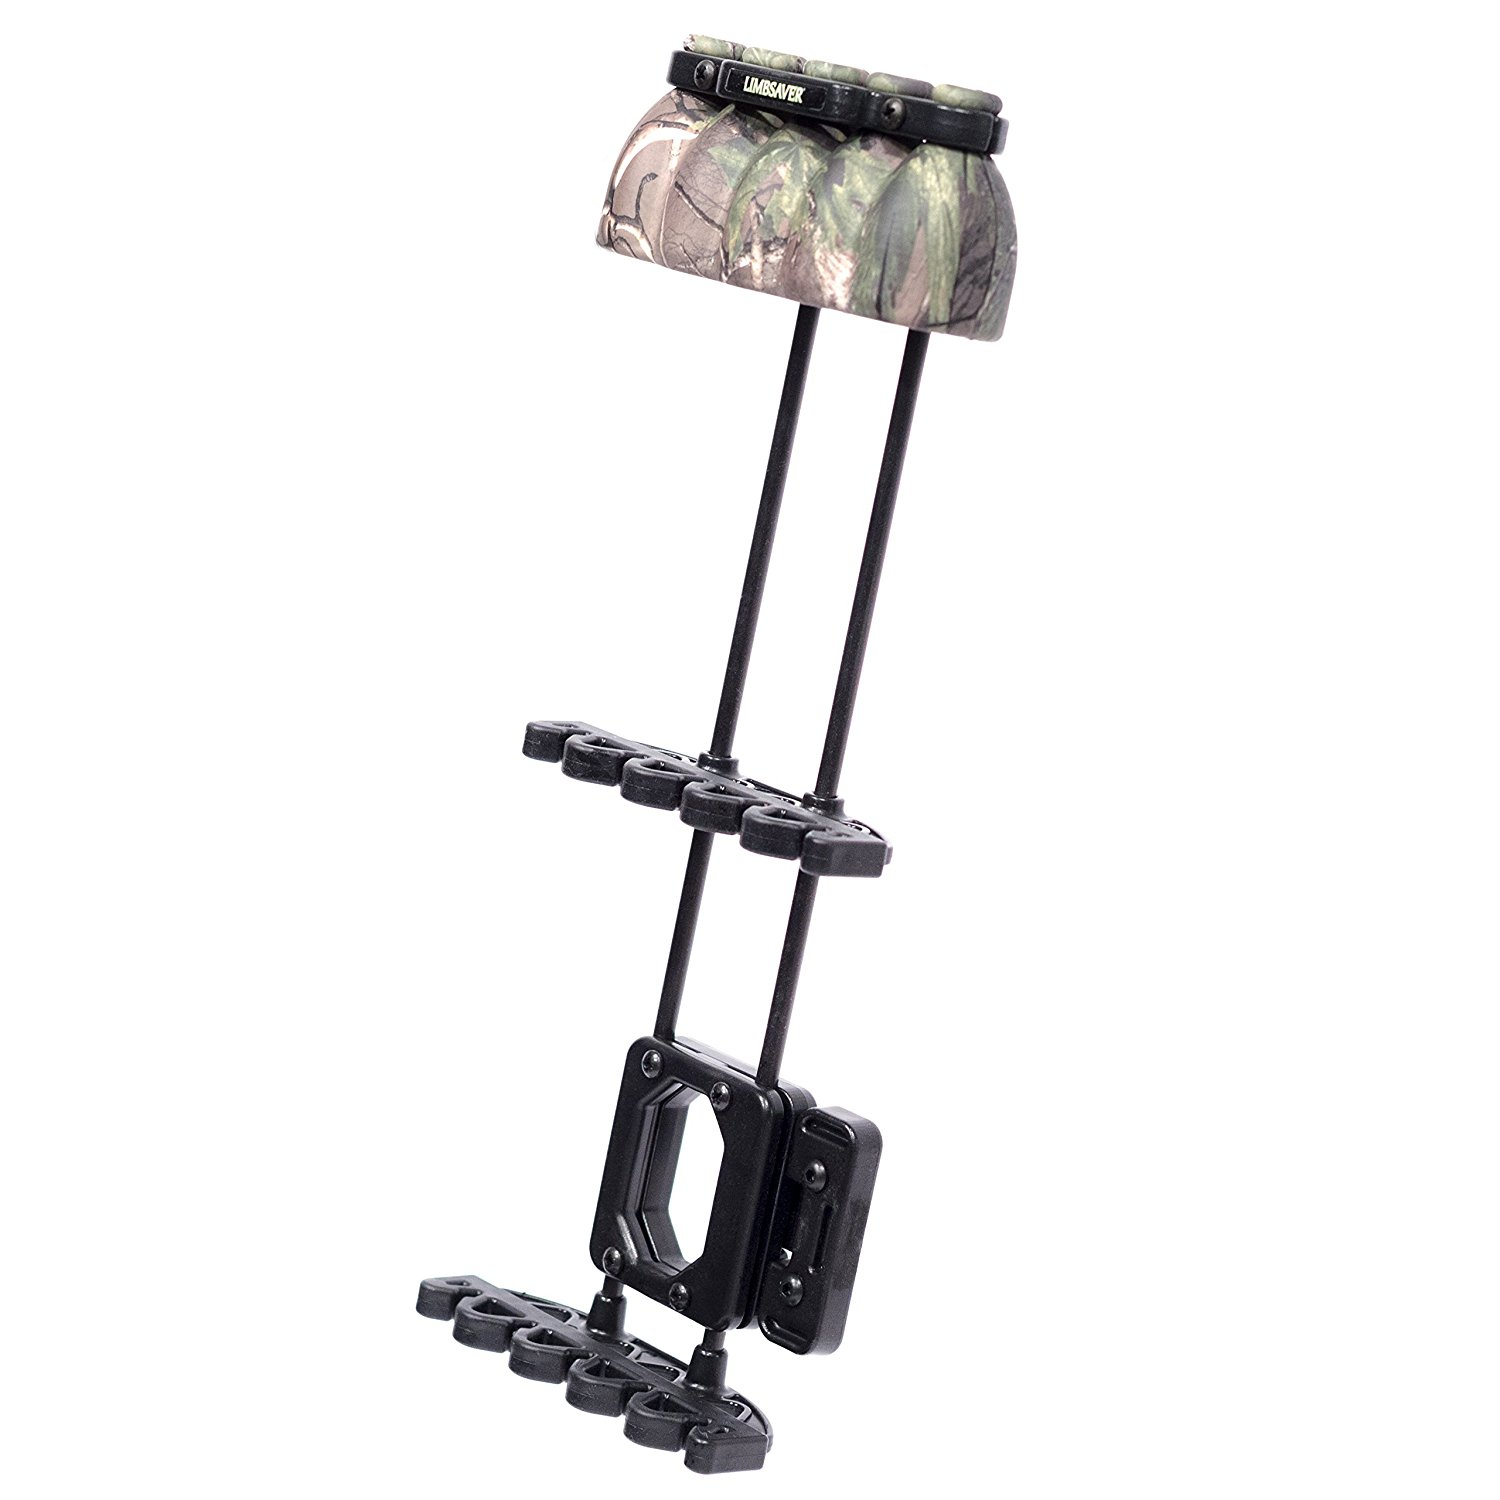 LimbSaver Silent Quiver Bow Hunting